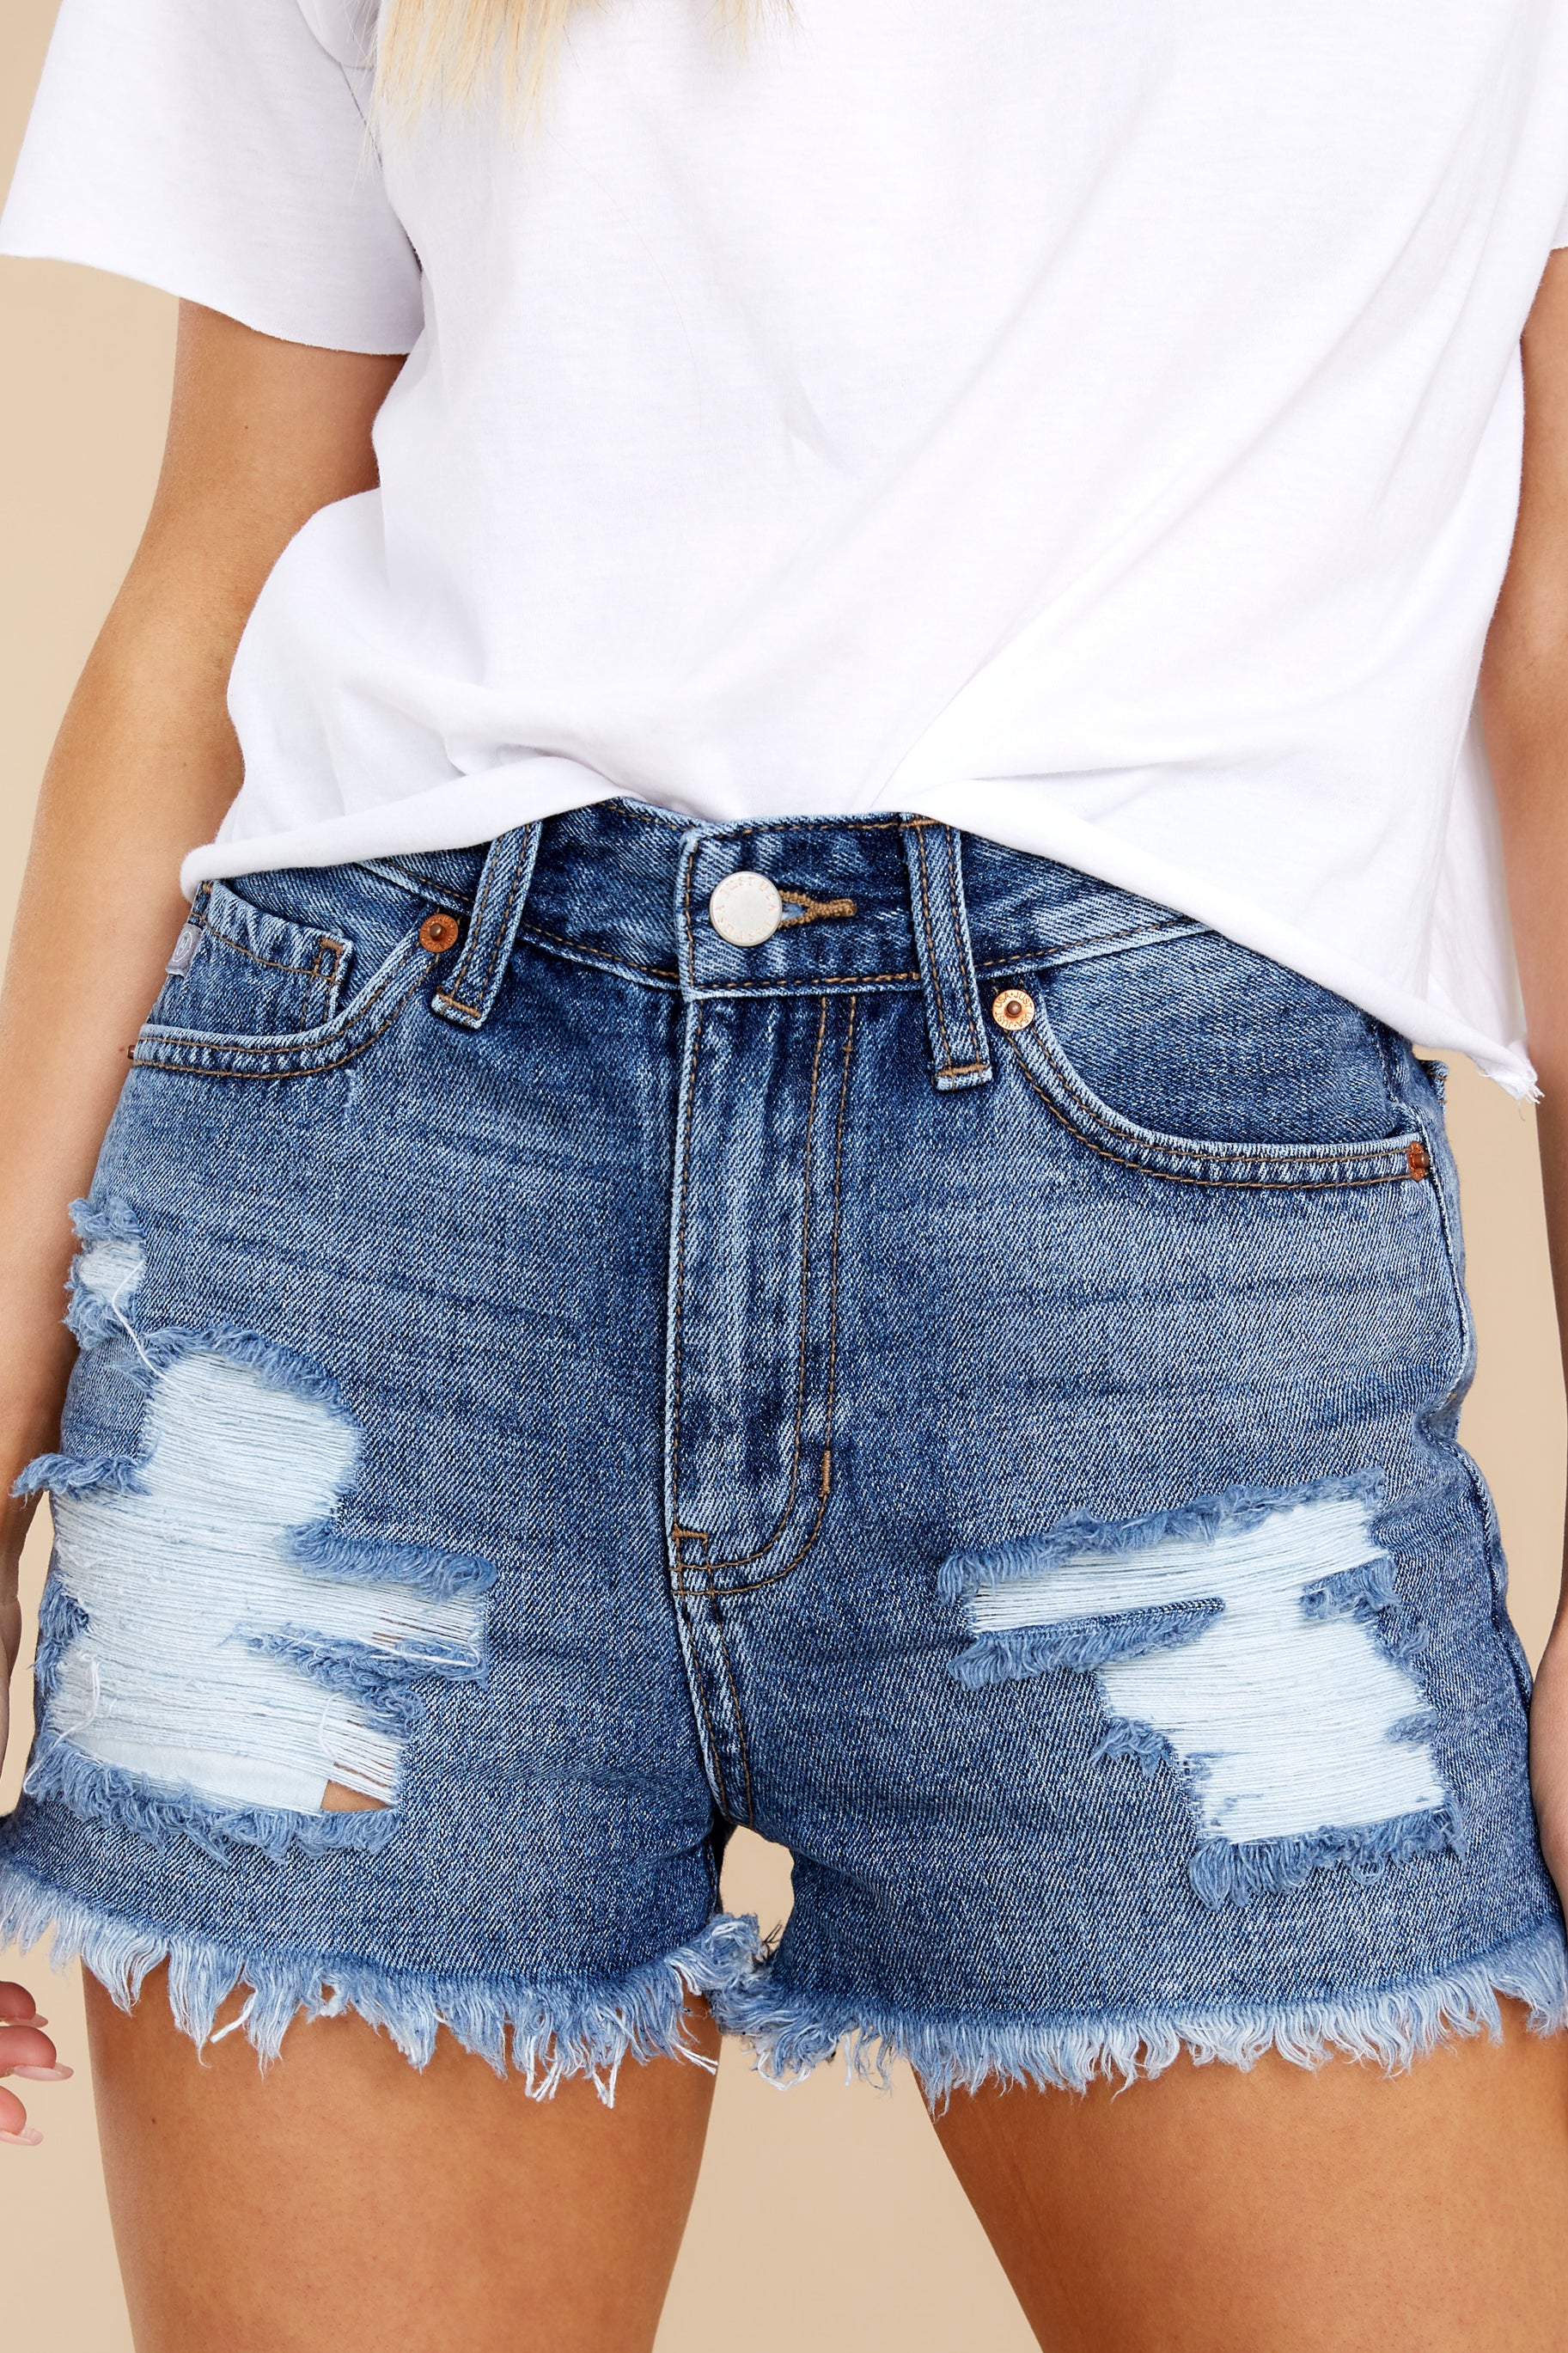 5 No Time To Waste Medium Wash Distressed Denim Shorts at reddress.com